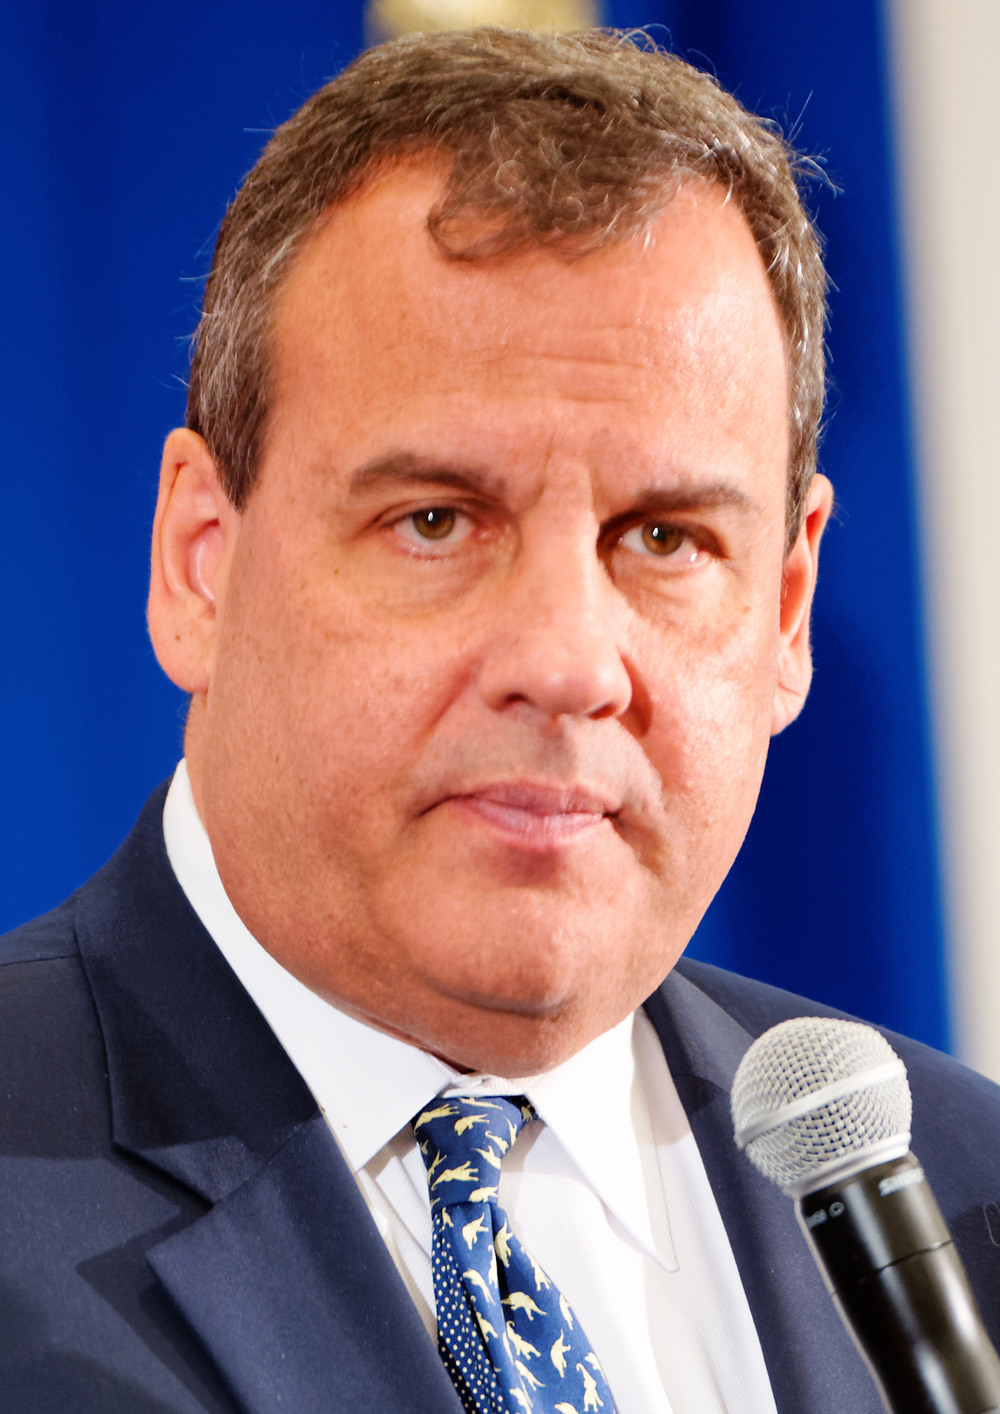 Gov. Chris Christie. Credit: Michael Vadon via Wikimedia Commons.